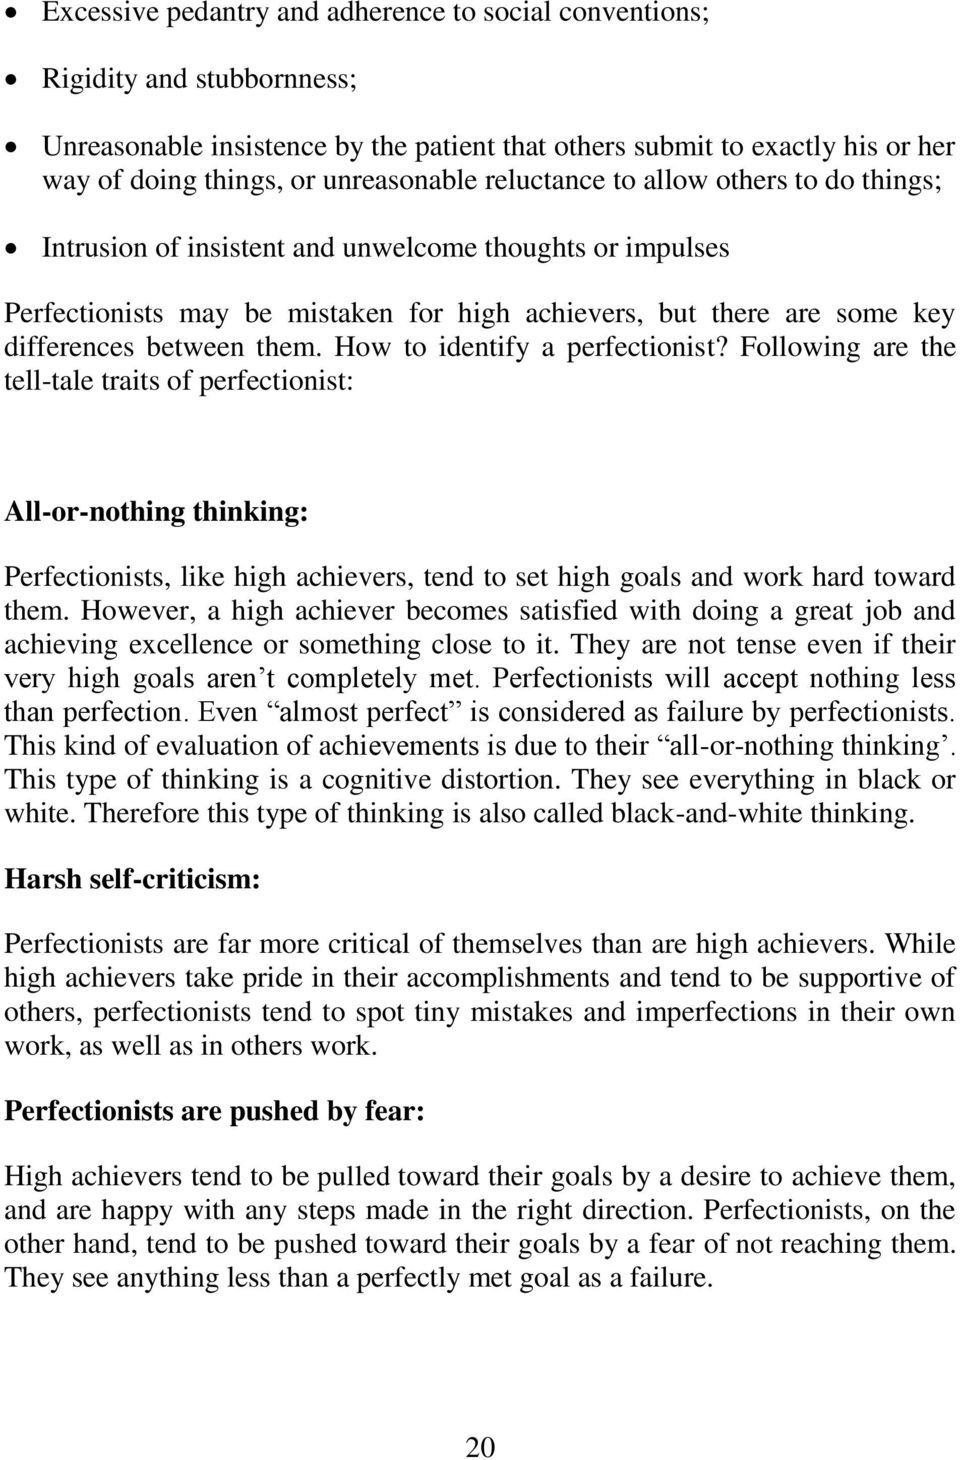 How to identify a perfectionist? Following are the tell-tale traits of perfectionist: All-or-nothing thinking: Perfectionists, like high achievers, tend to set high goals and work hard toward them.